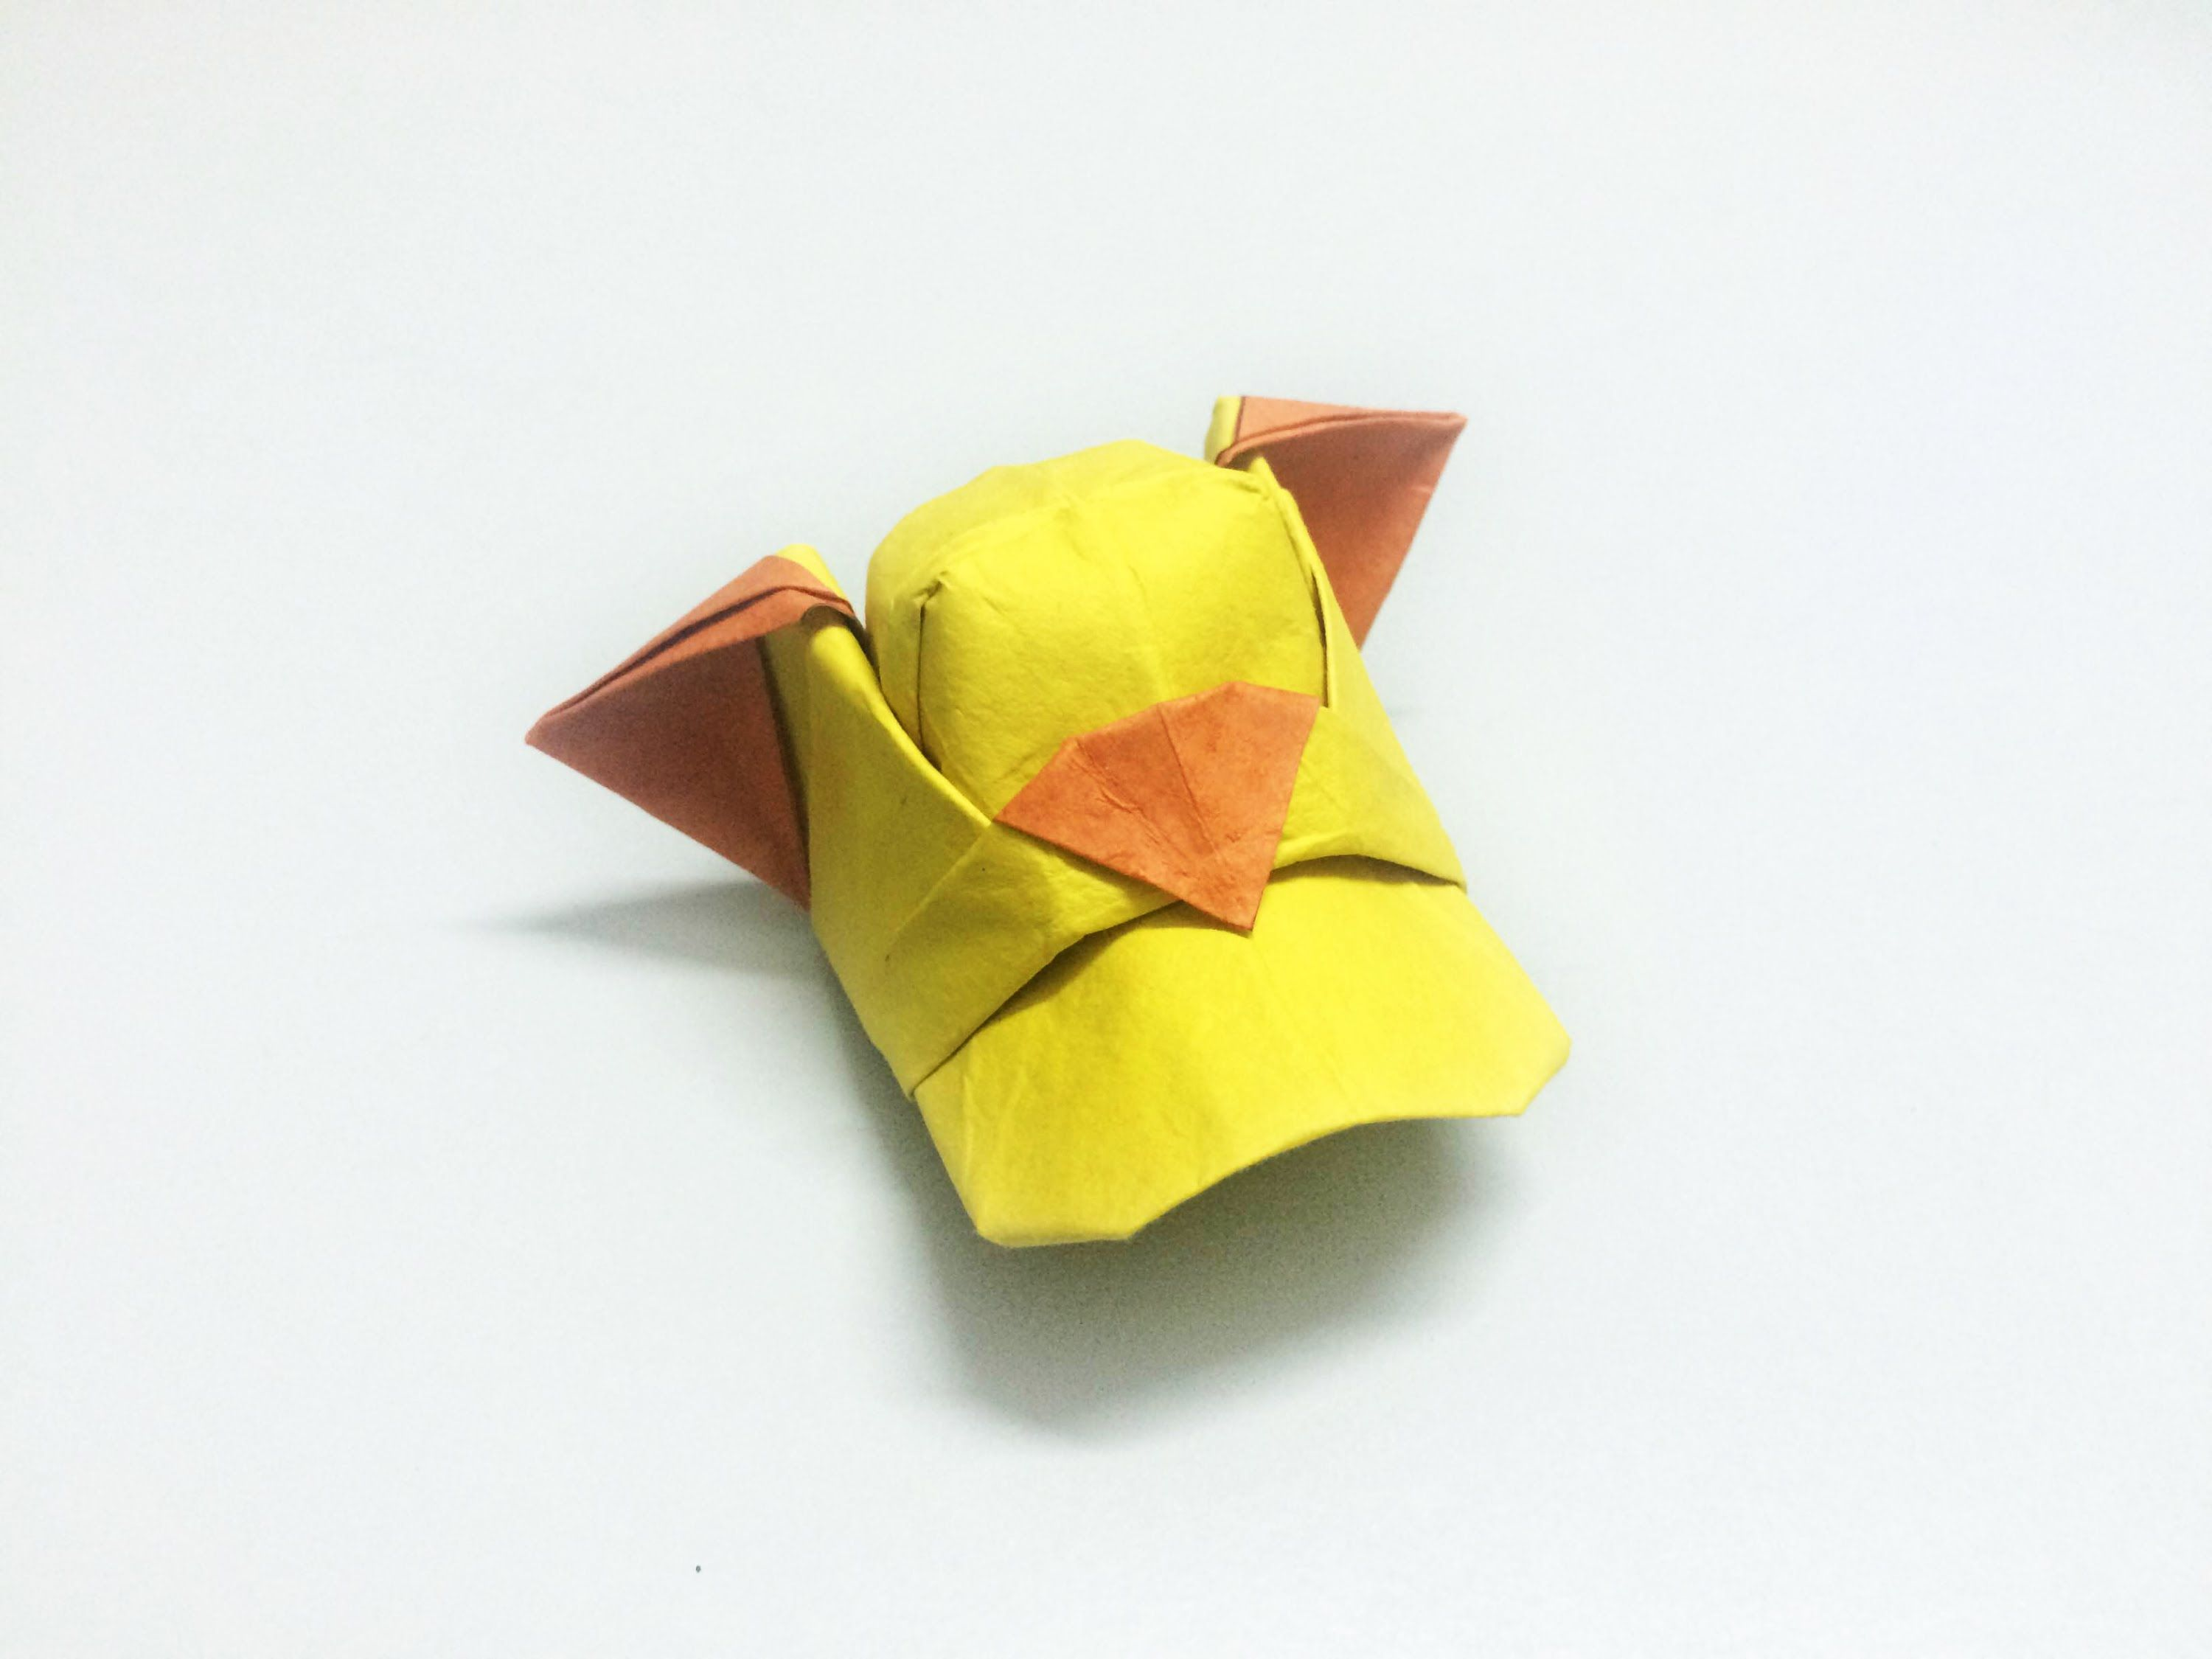 Origami Mario Cap Instructions Tutorial Handmade Link By Wakeangel2001 On Deviantart Wing Paperph2